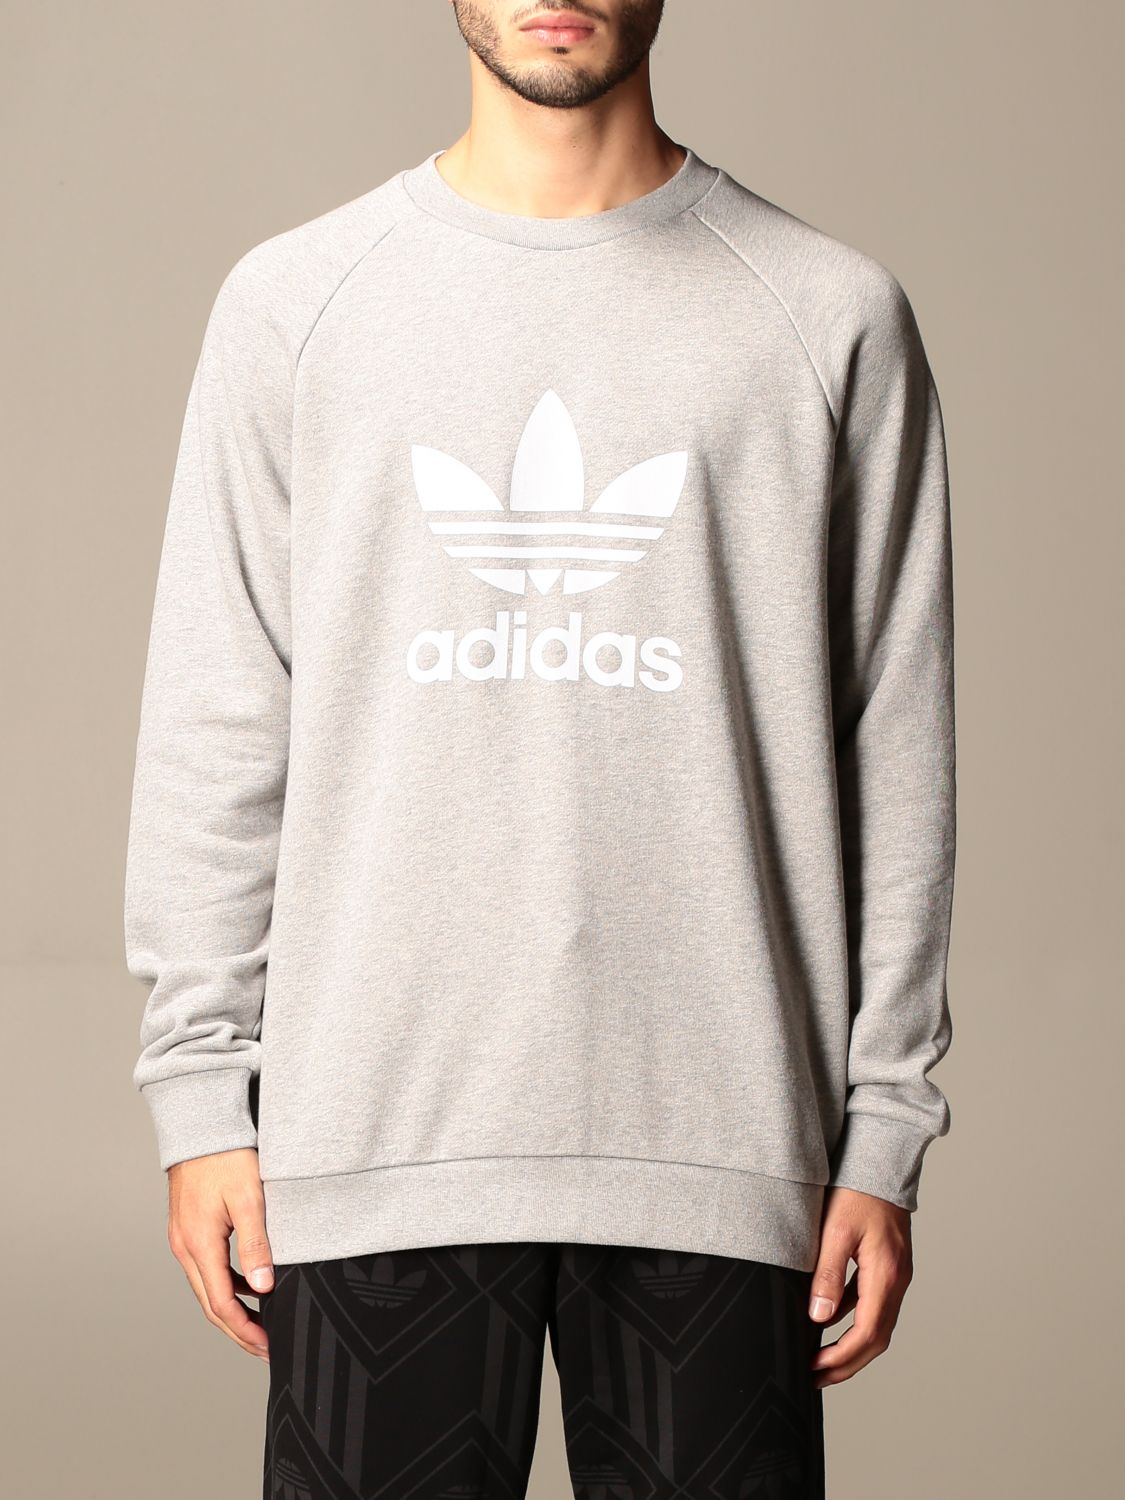 Sweatshirt Adidas Originals: Sweatshirt men Adidas Originals grey 1